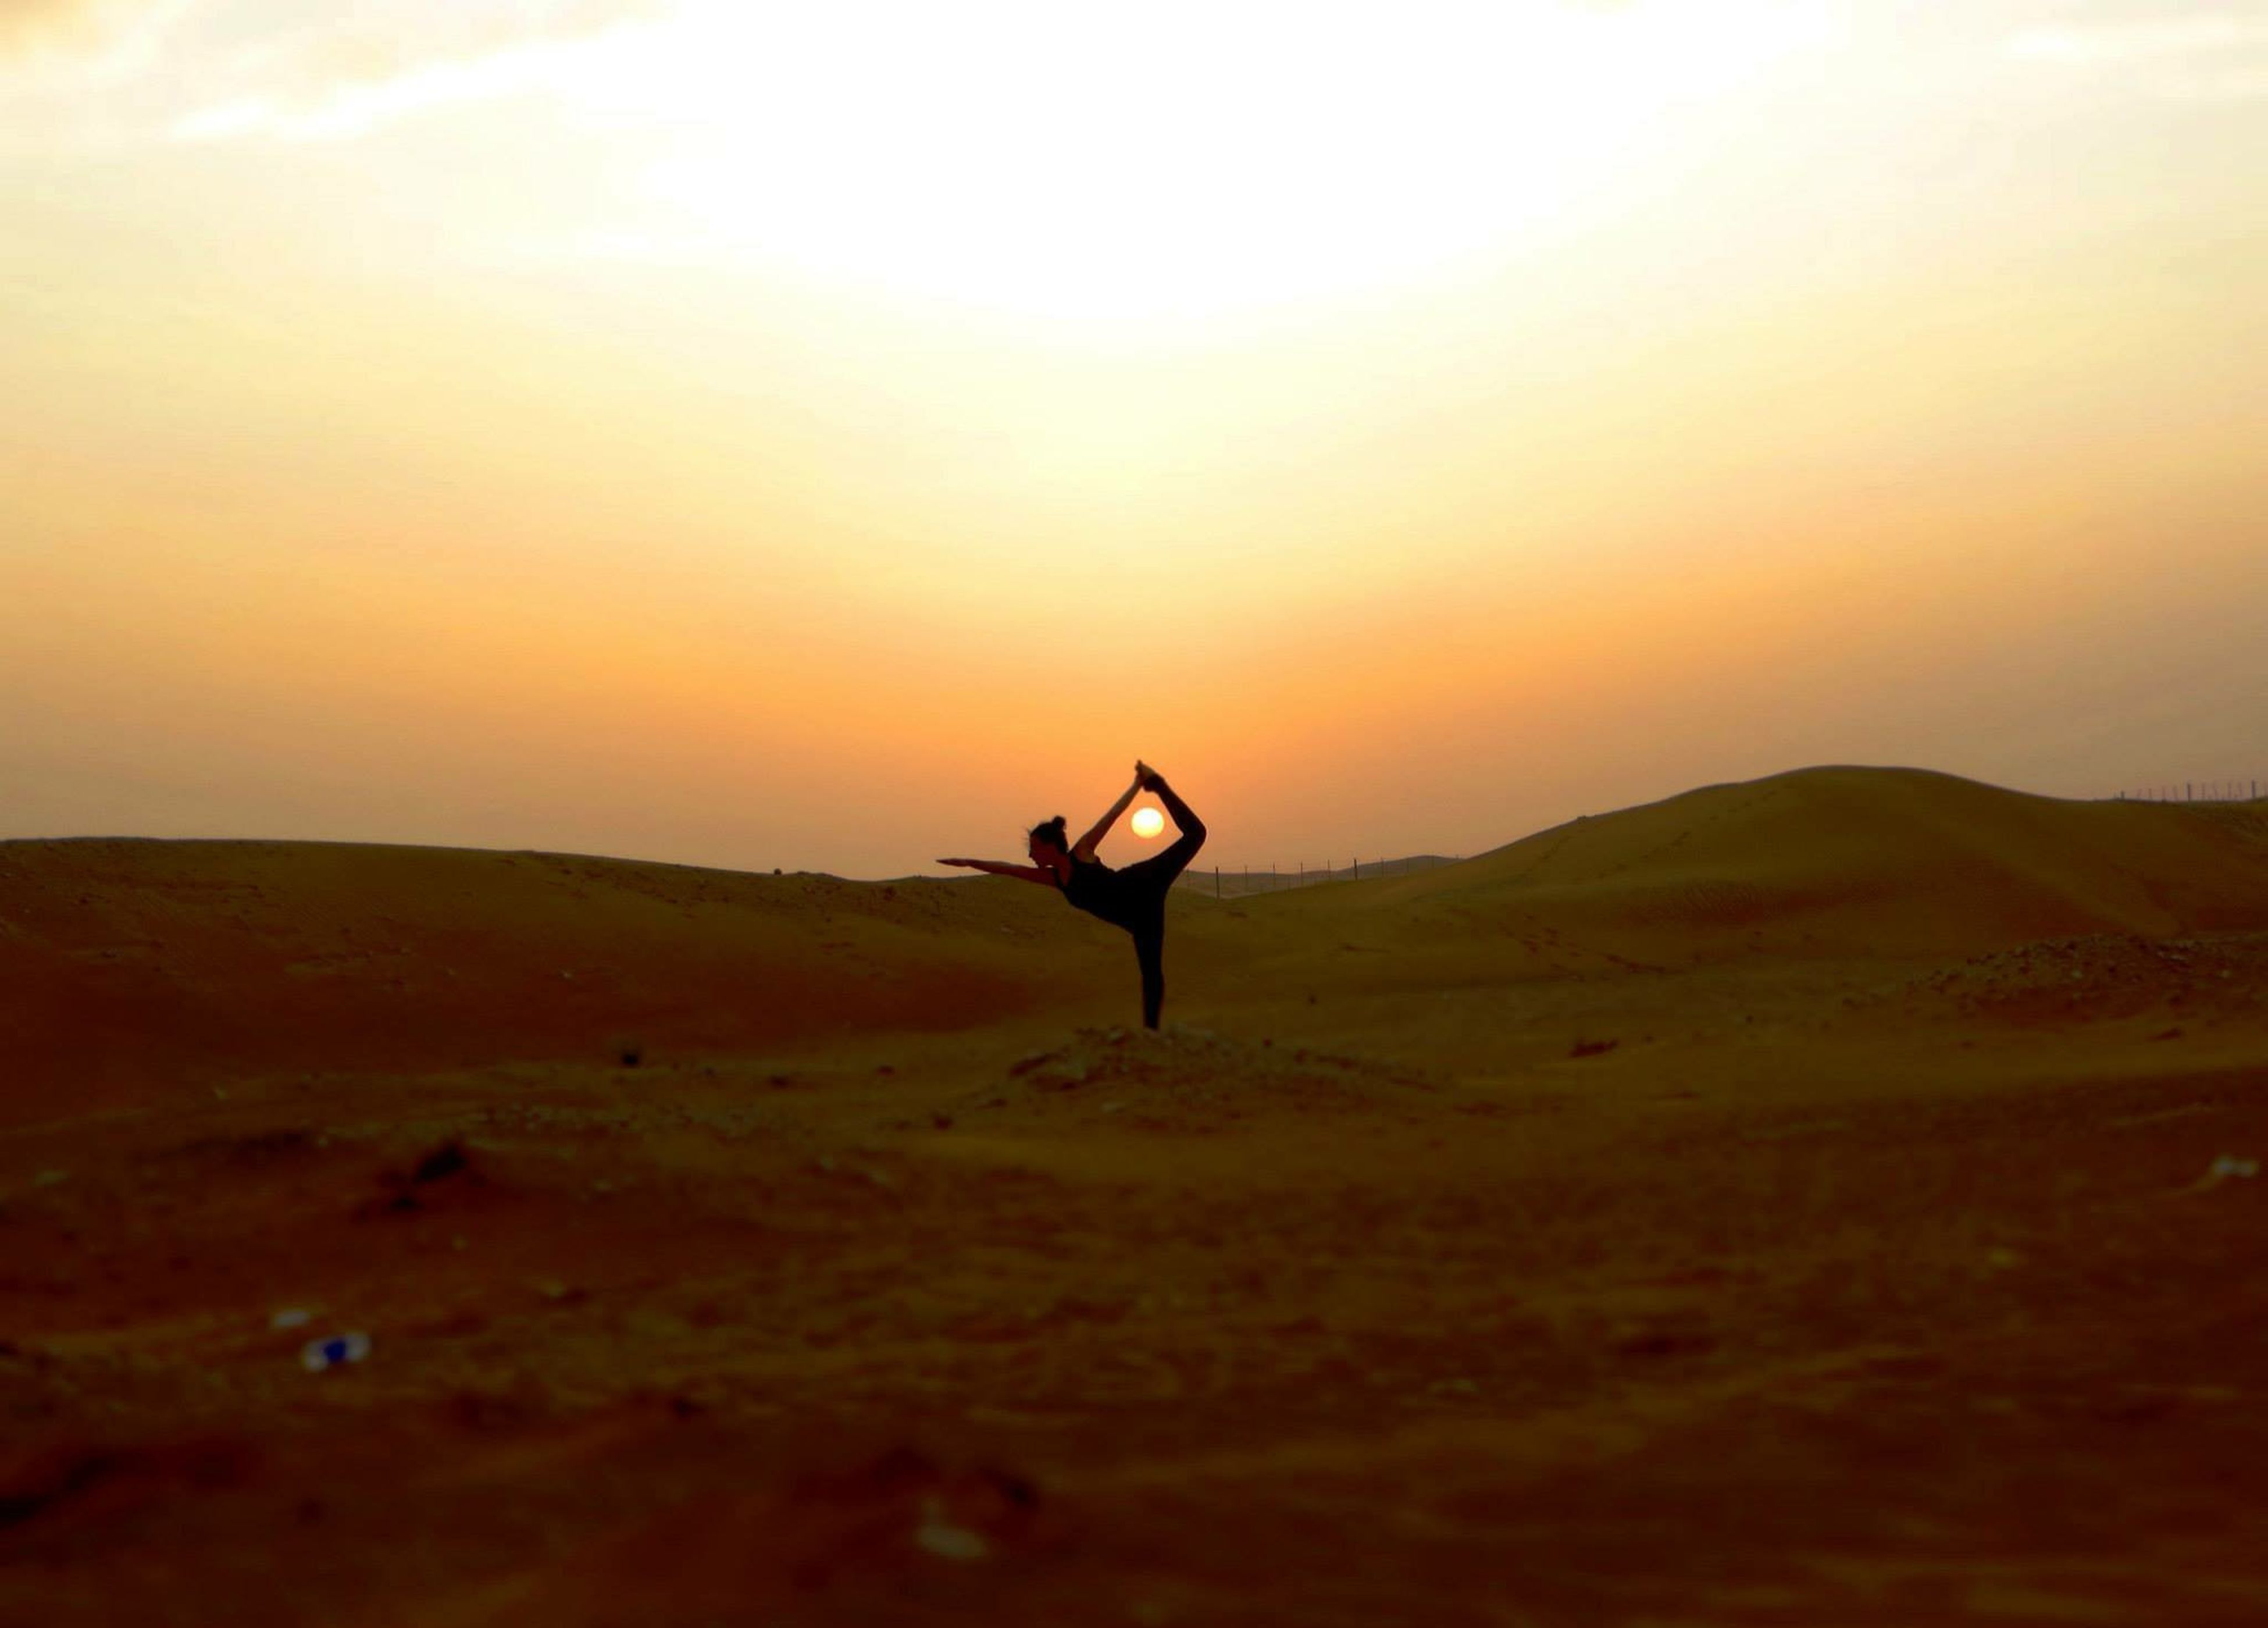 """Edge Of The World Alain Desert Yoga Yoga Pose Glitch so this yoga pose is called """"Bow and arrow"""". The sun perfectly placed in between the legs was an accident, but ended up fitting perfectly as it looks like the sun is right in the middle of the """"bow""""."""